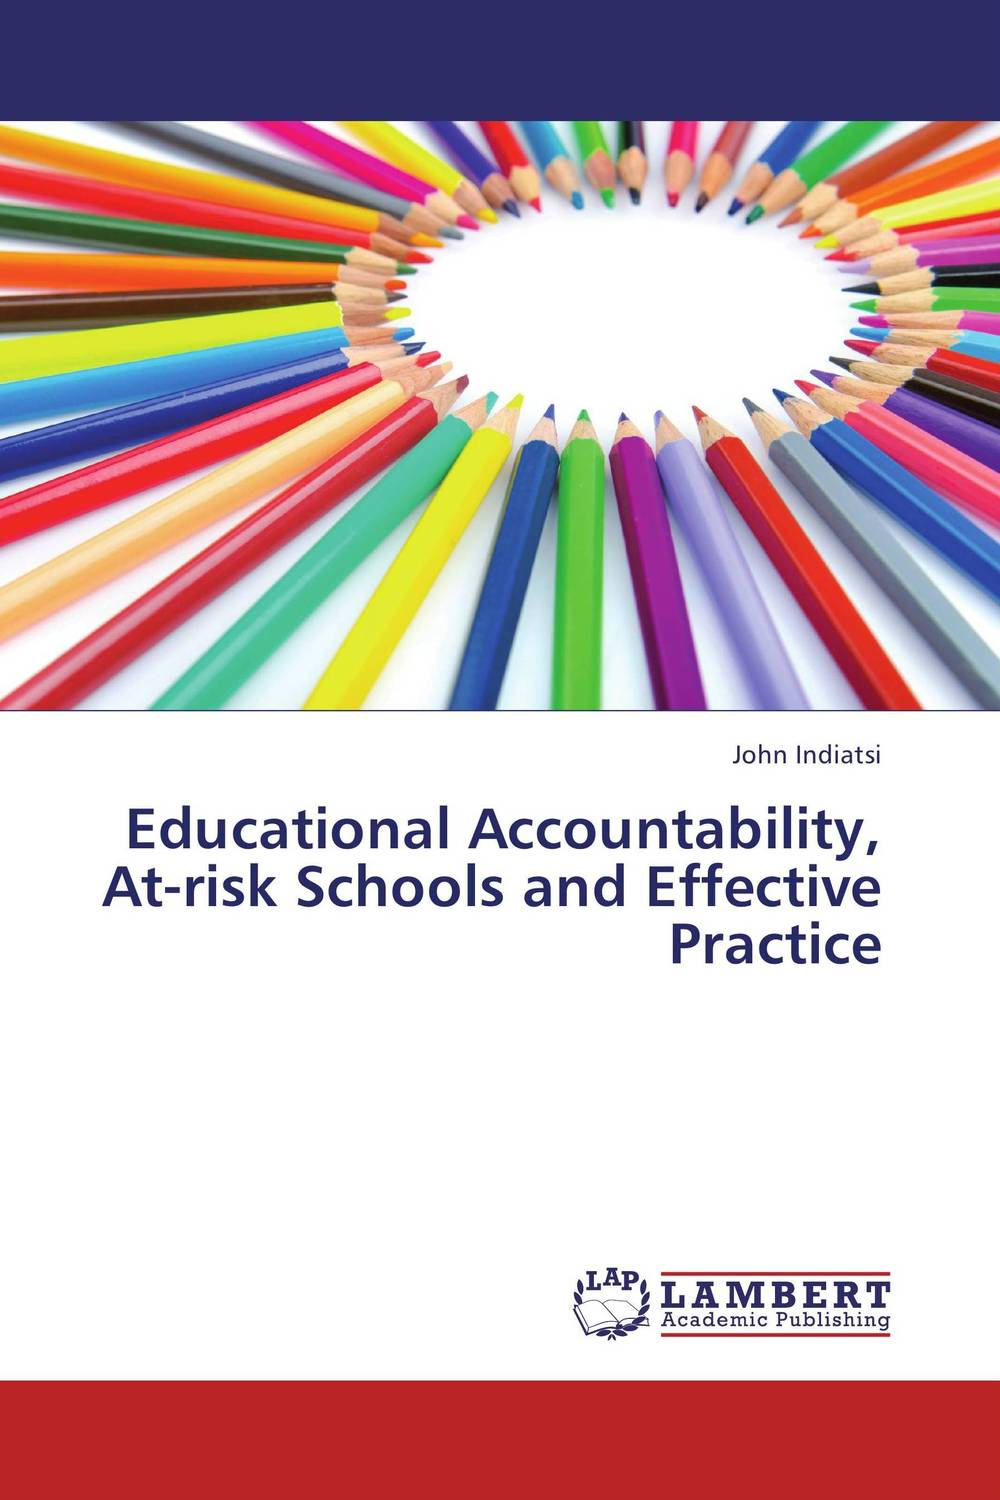 Educational Accountability, At-risk Schools and Effective Practice heyderman e complete key for schools teacher s book